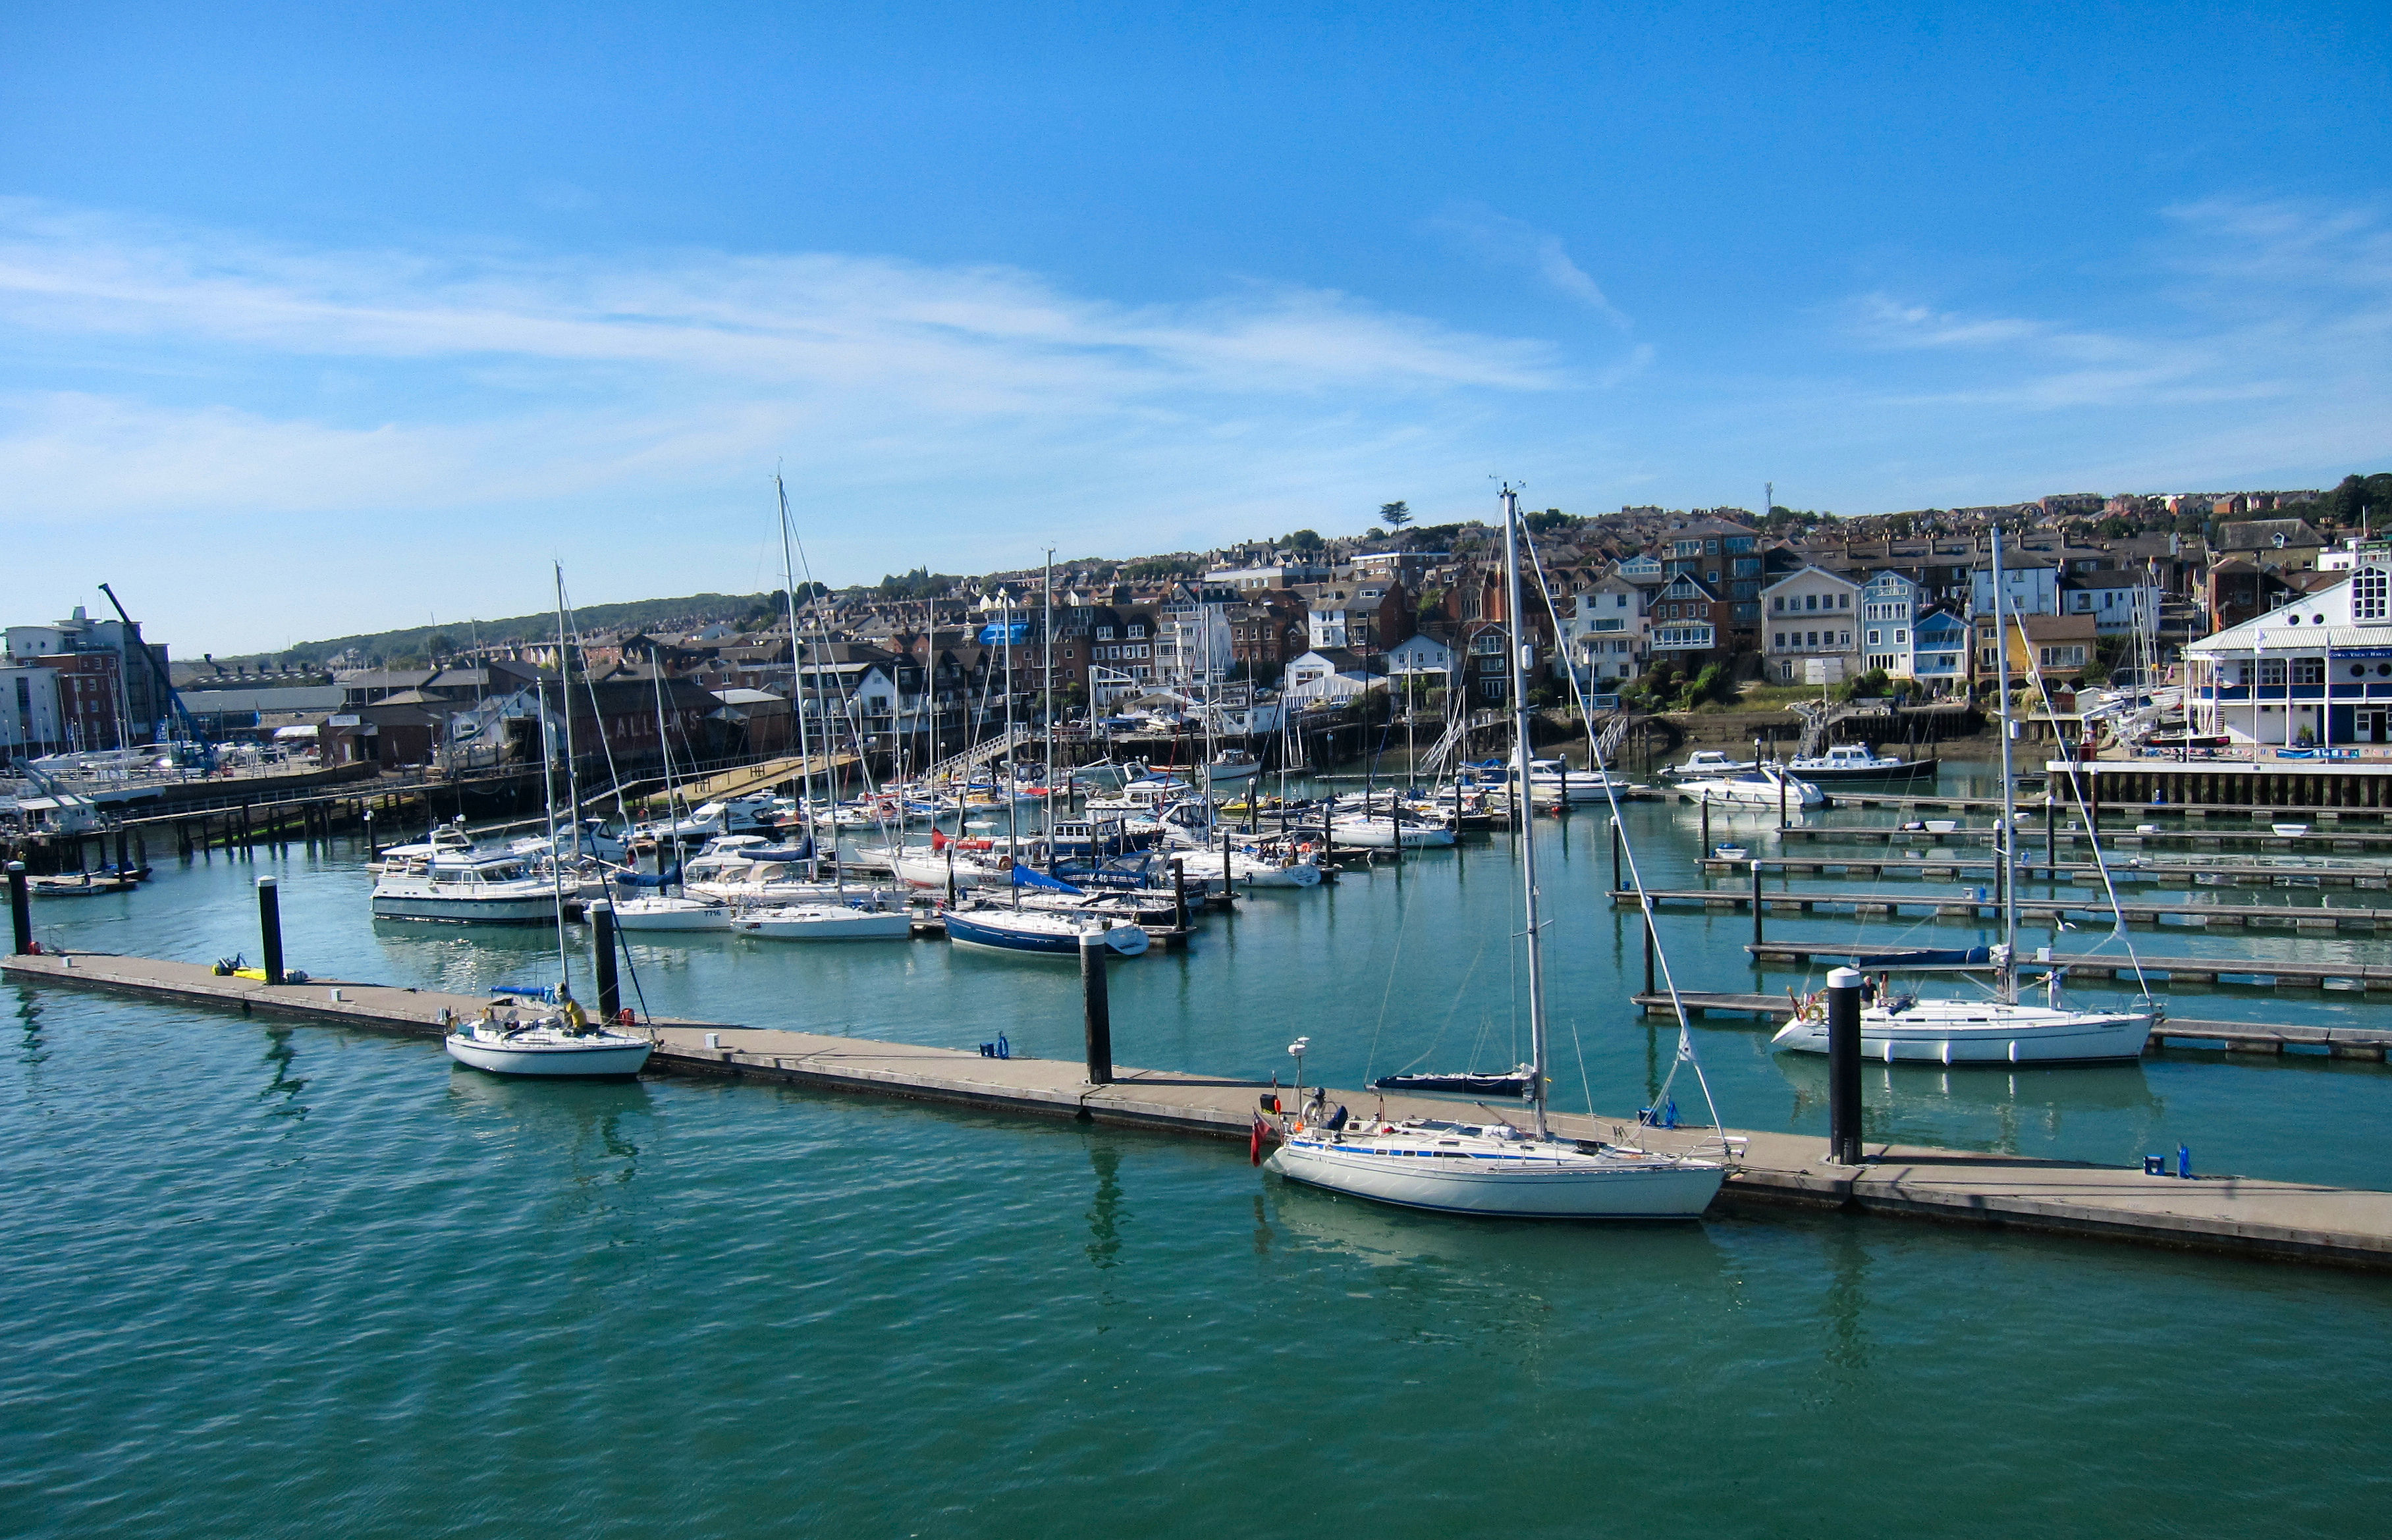 Harbour, Isle of Wight